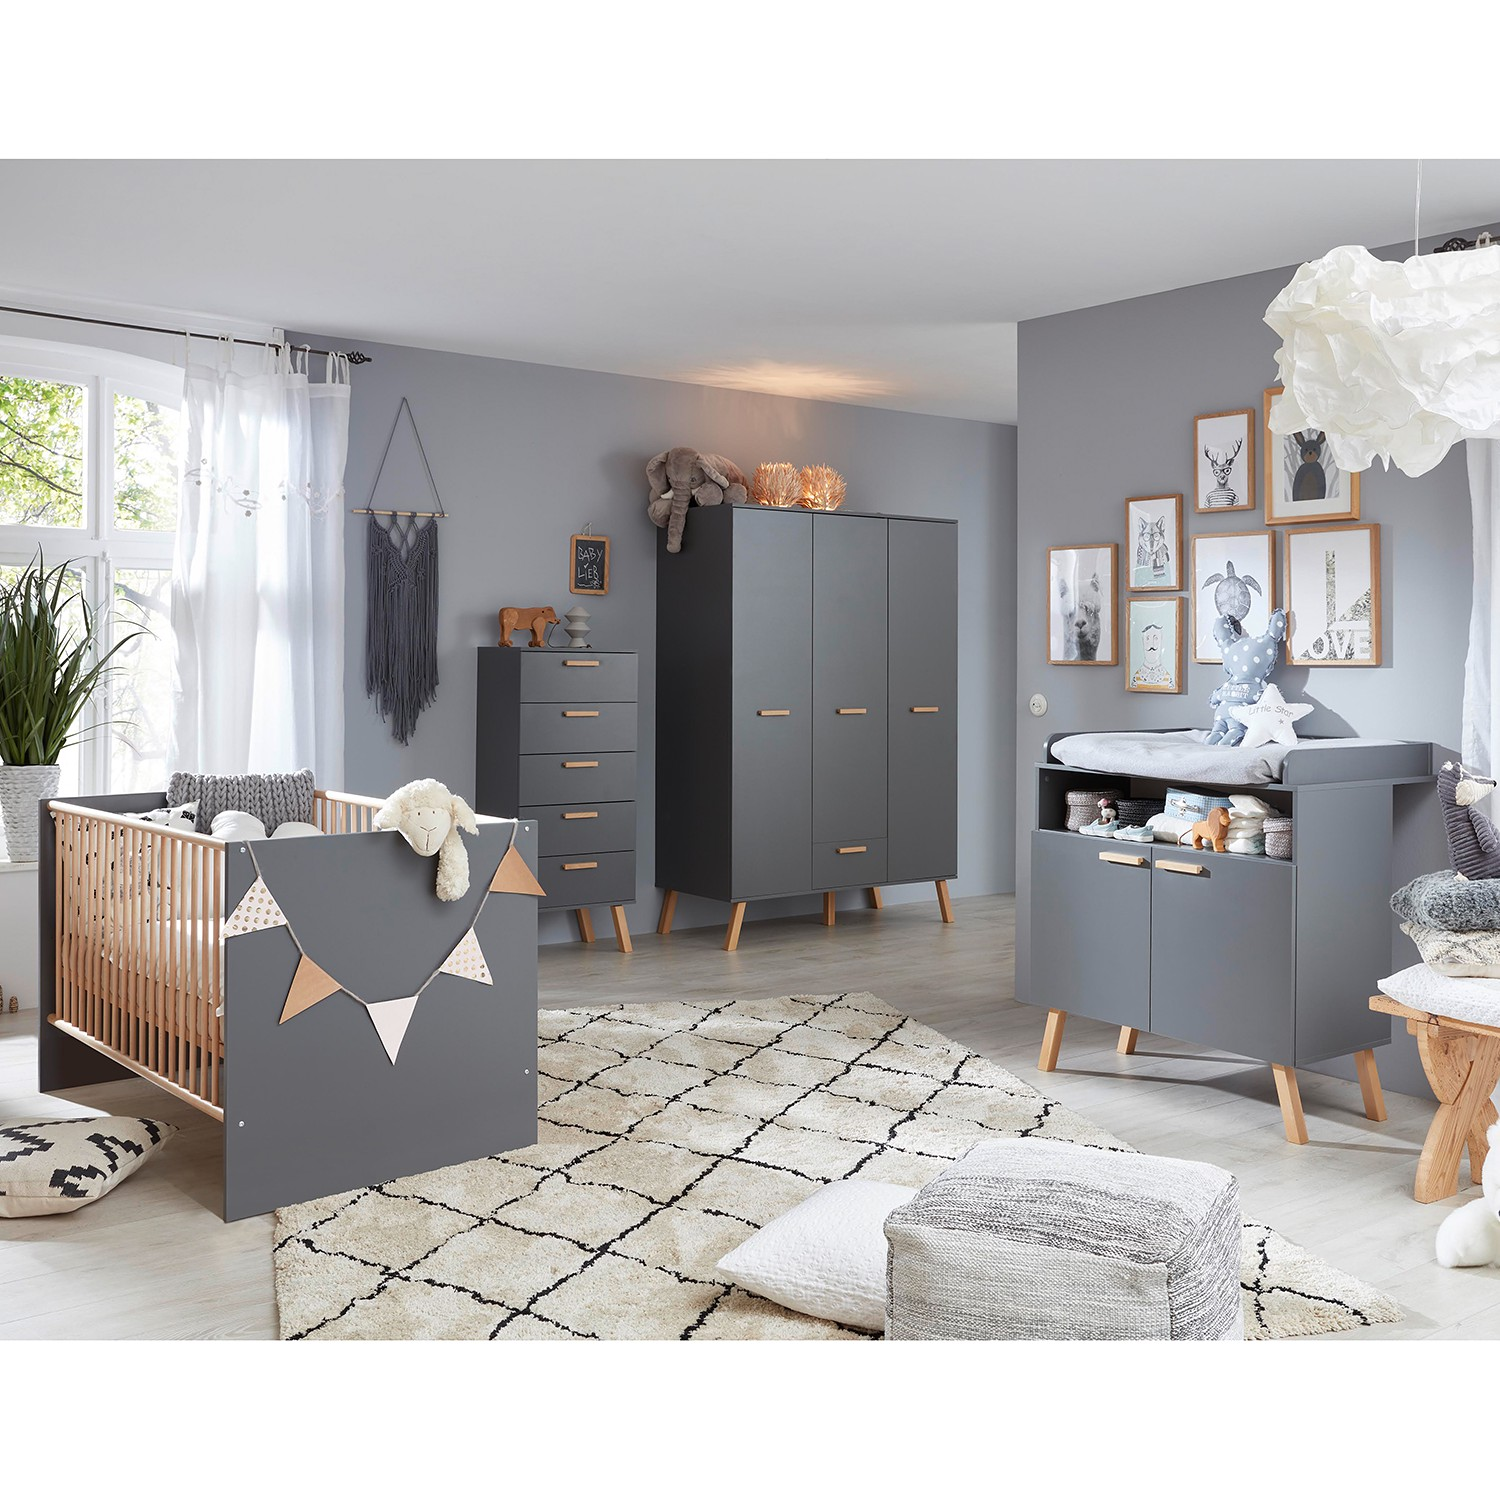 Home24 Commode Mats, Trendteam